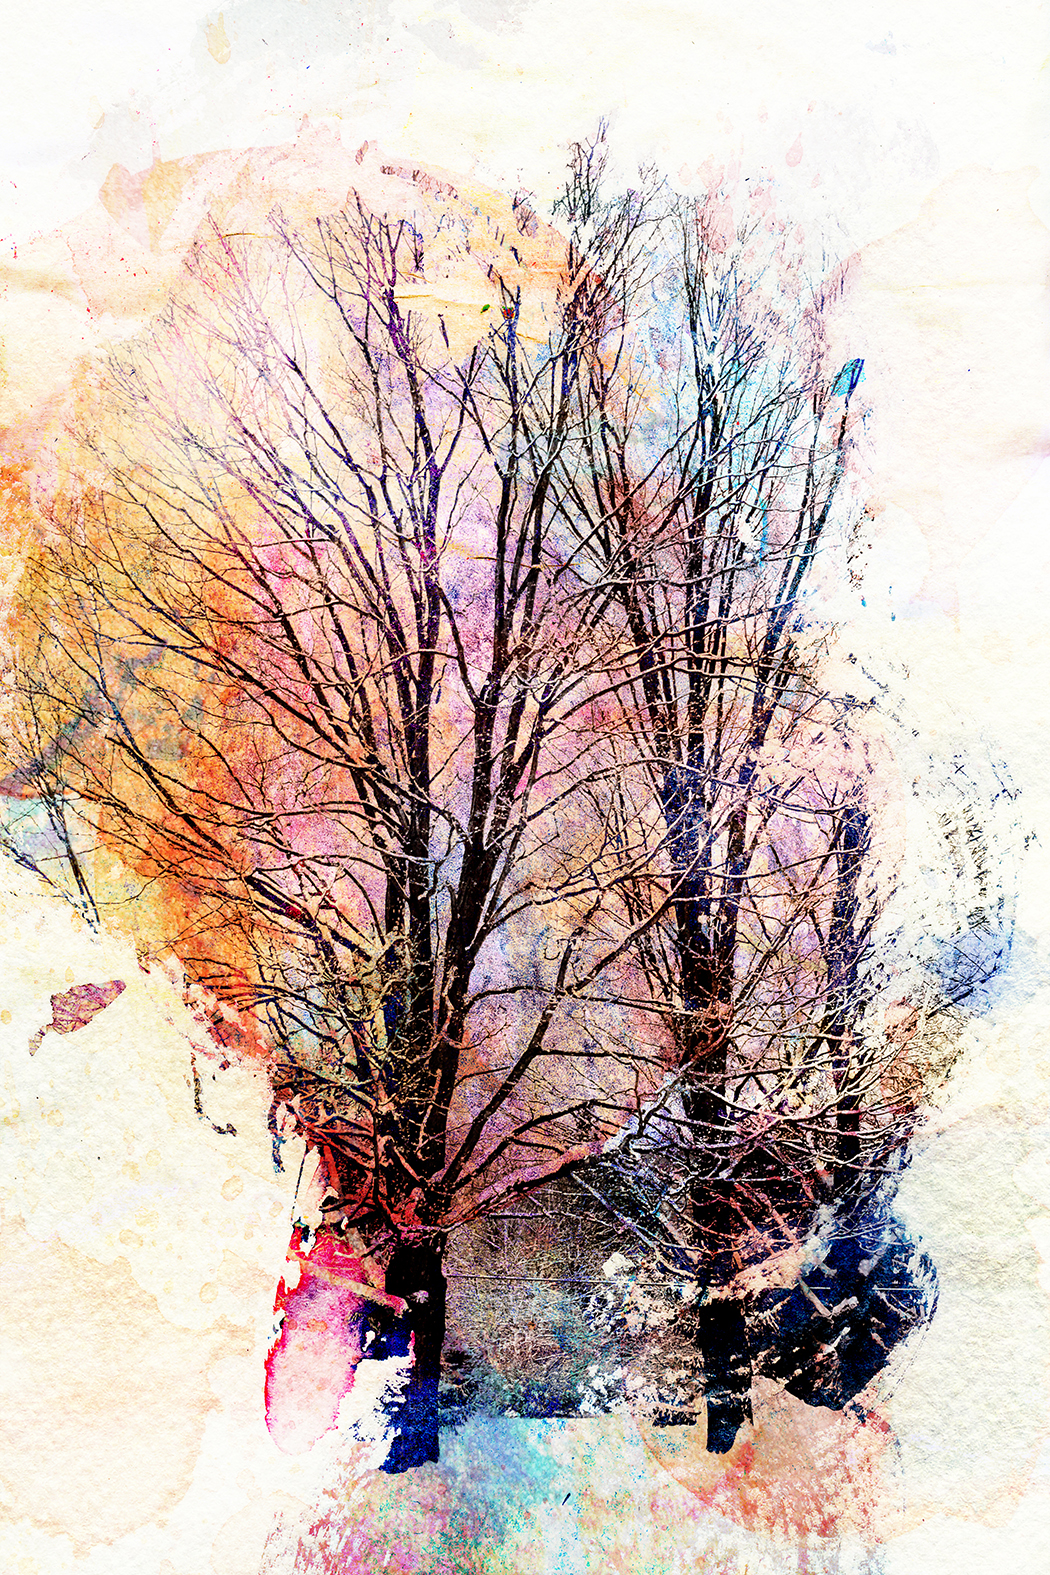 Winter Trees, 2011 | 11x14 | $75